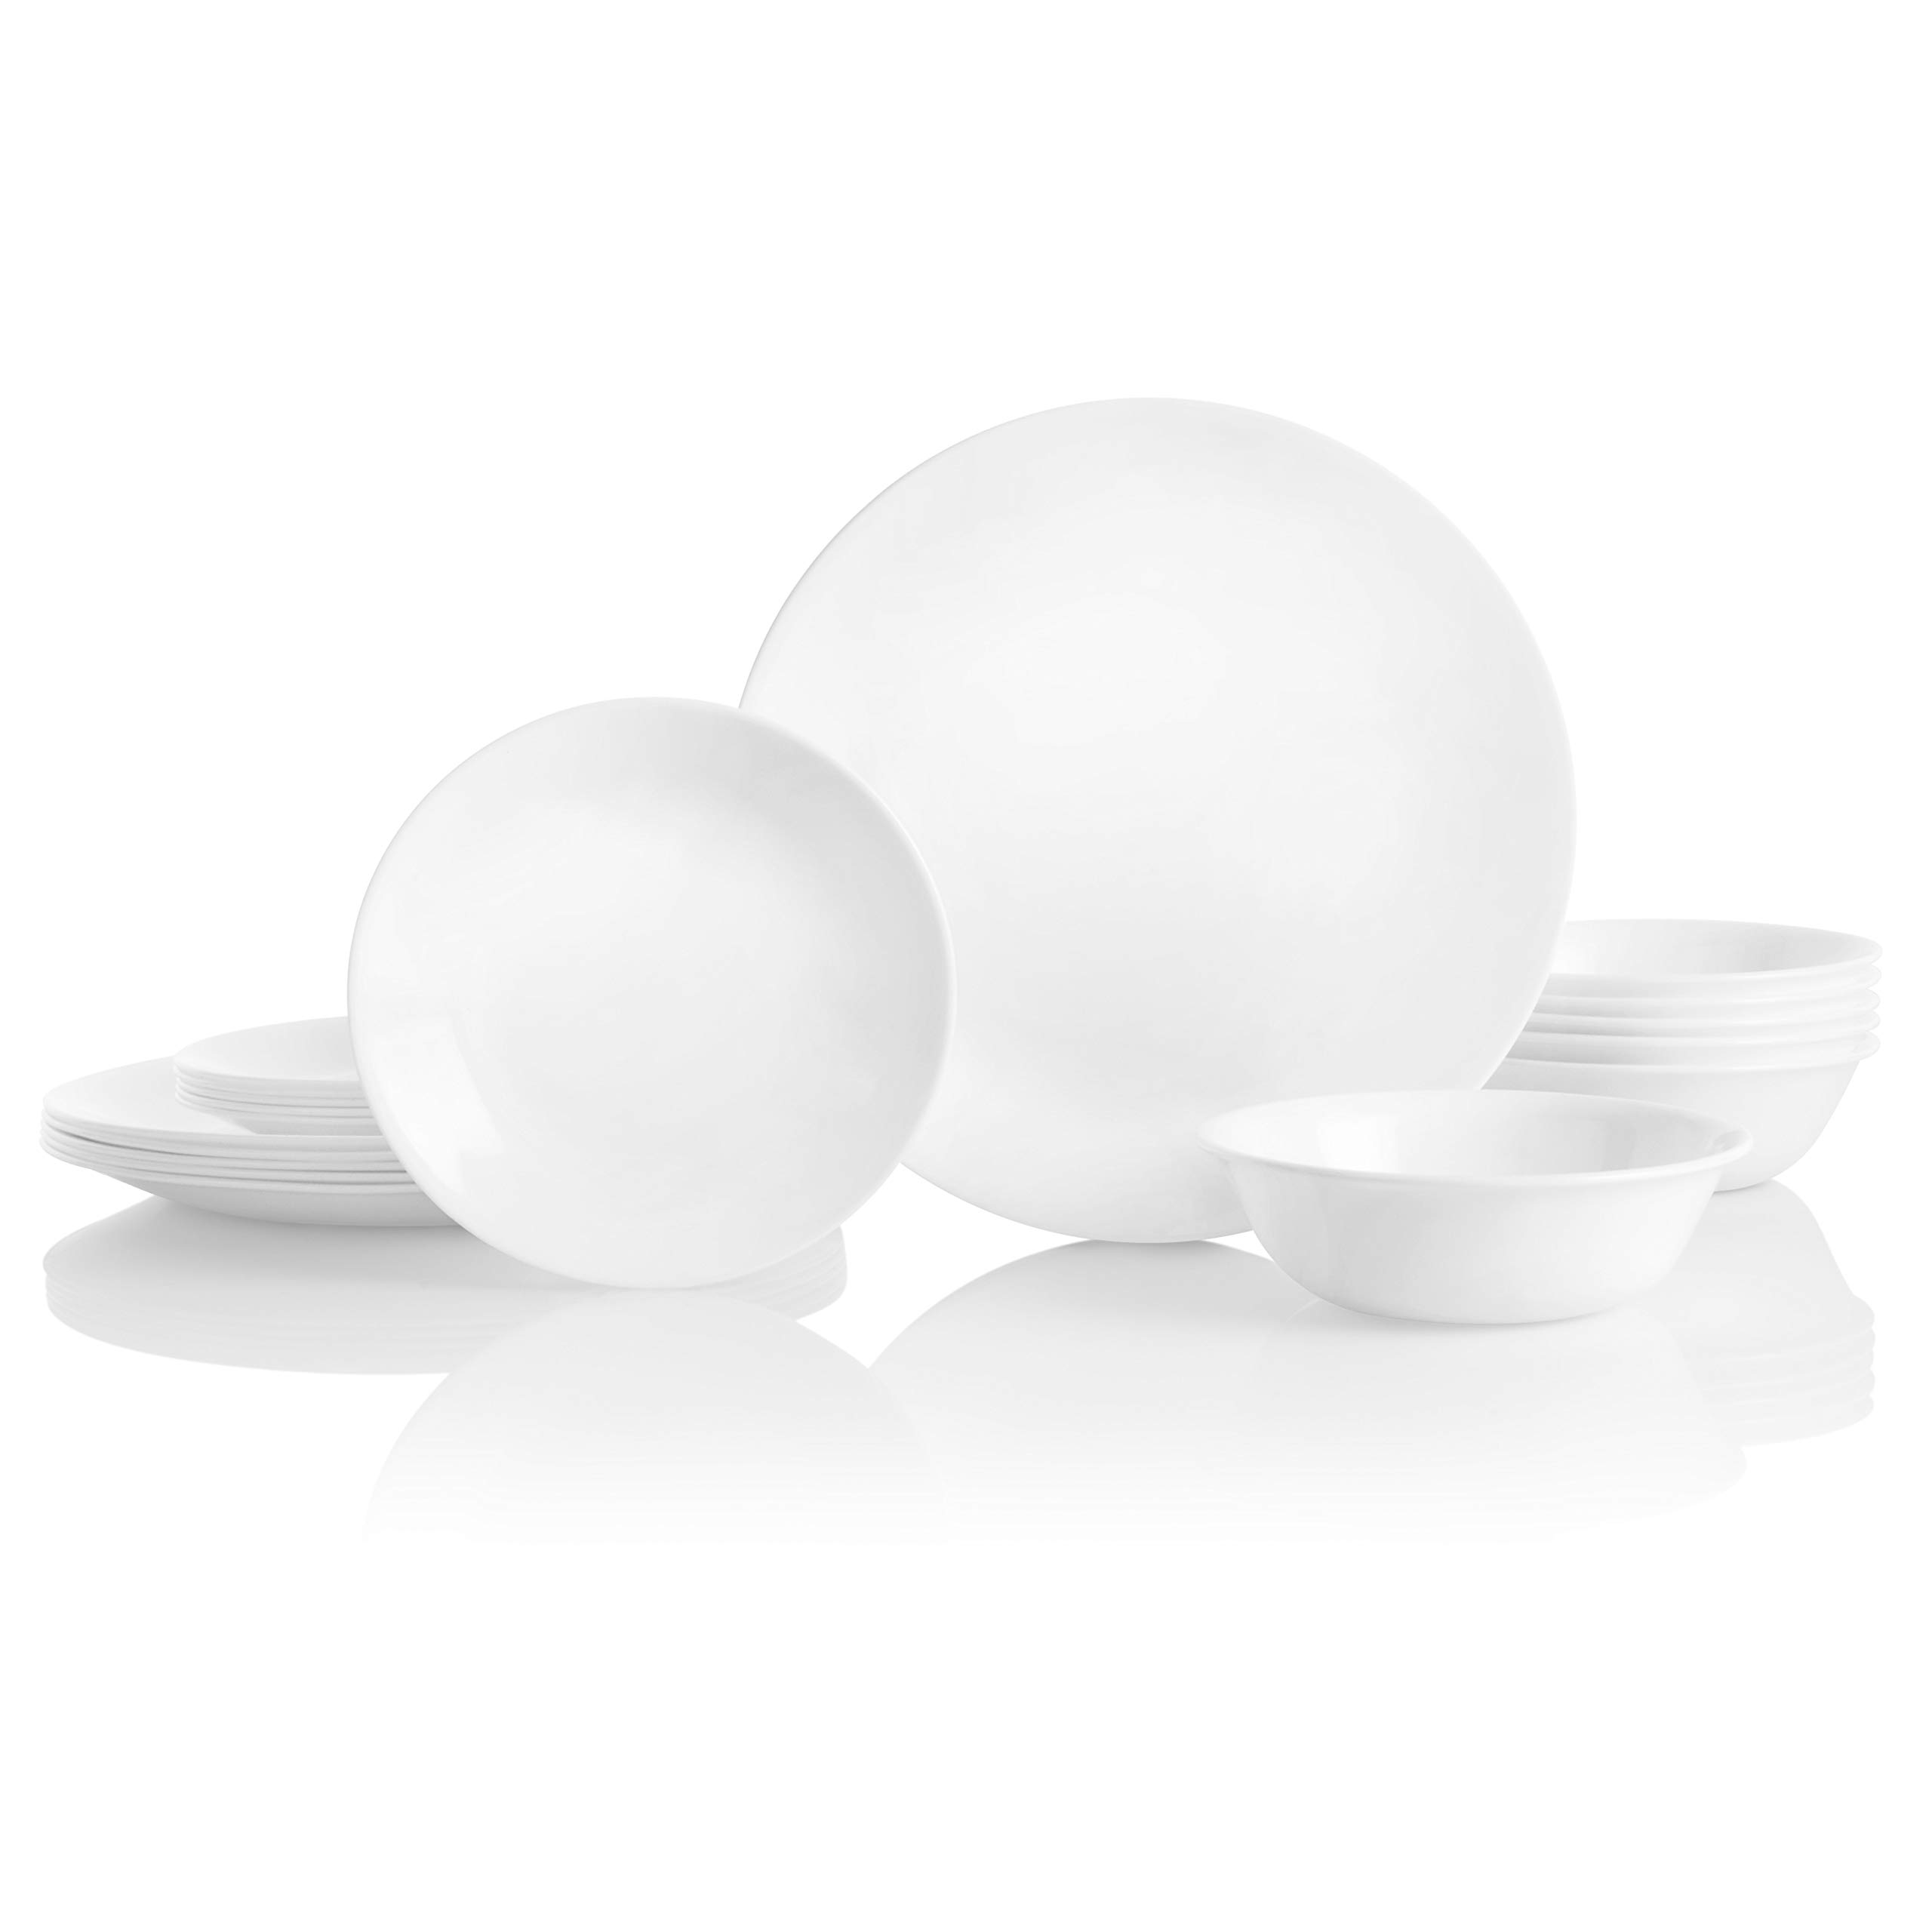 Corelle Service for 6, Chip Resistant, Winter Frost White Dinnerware Set, 18-Piece, by Corelle